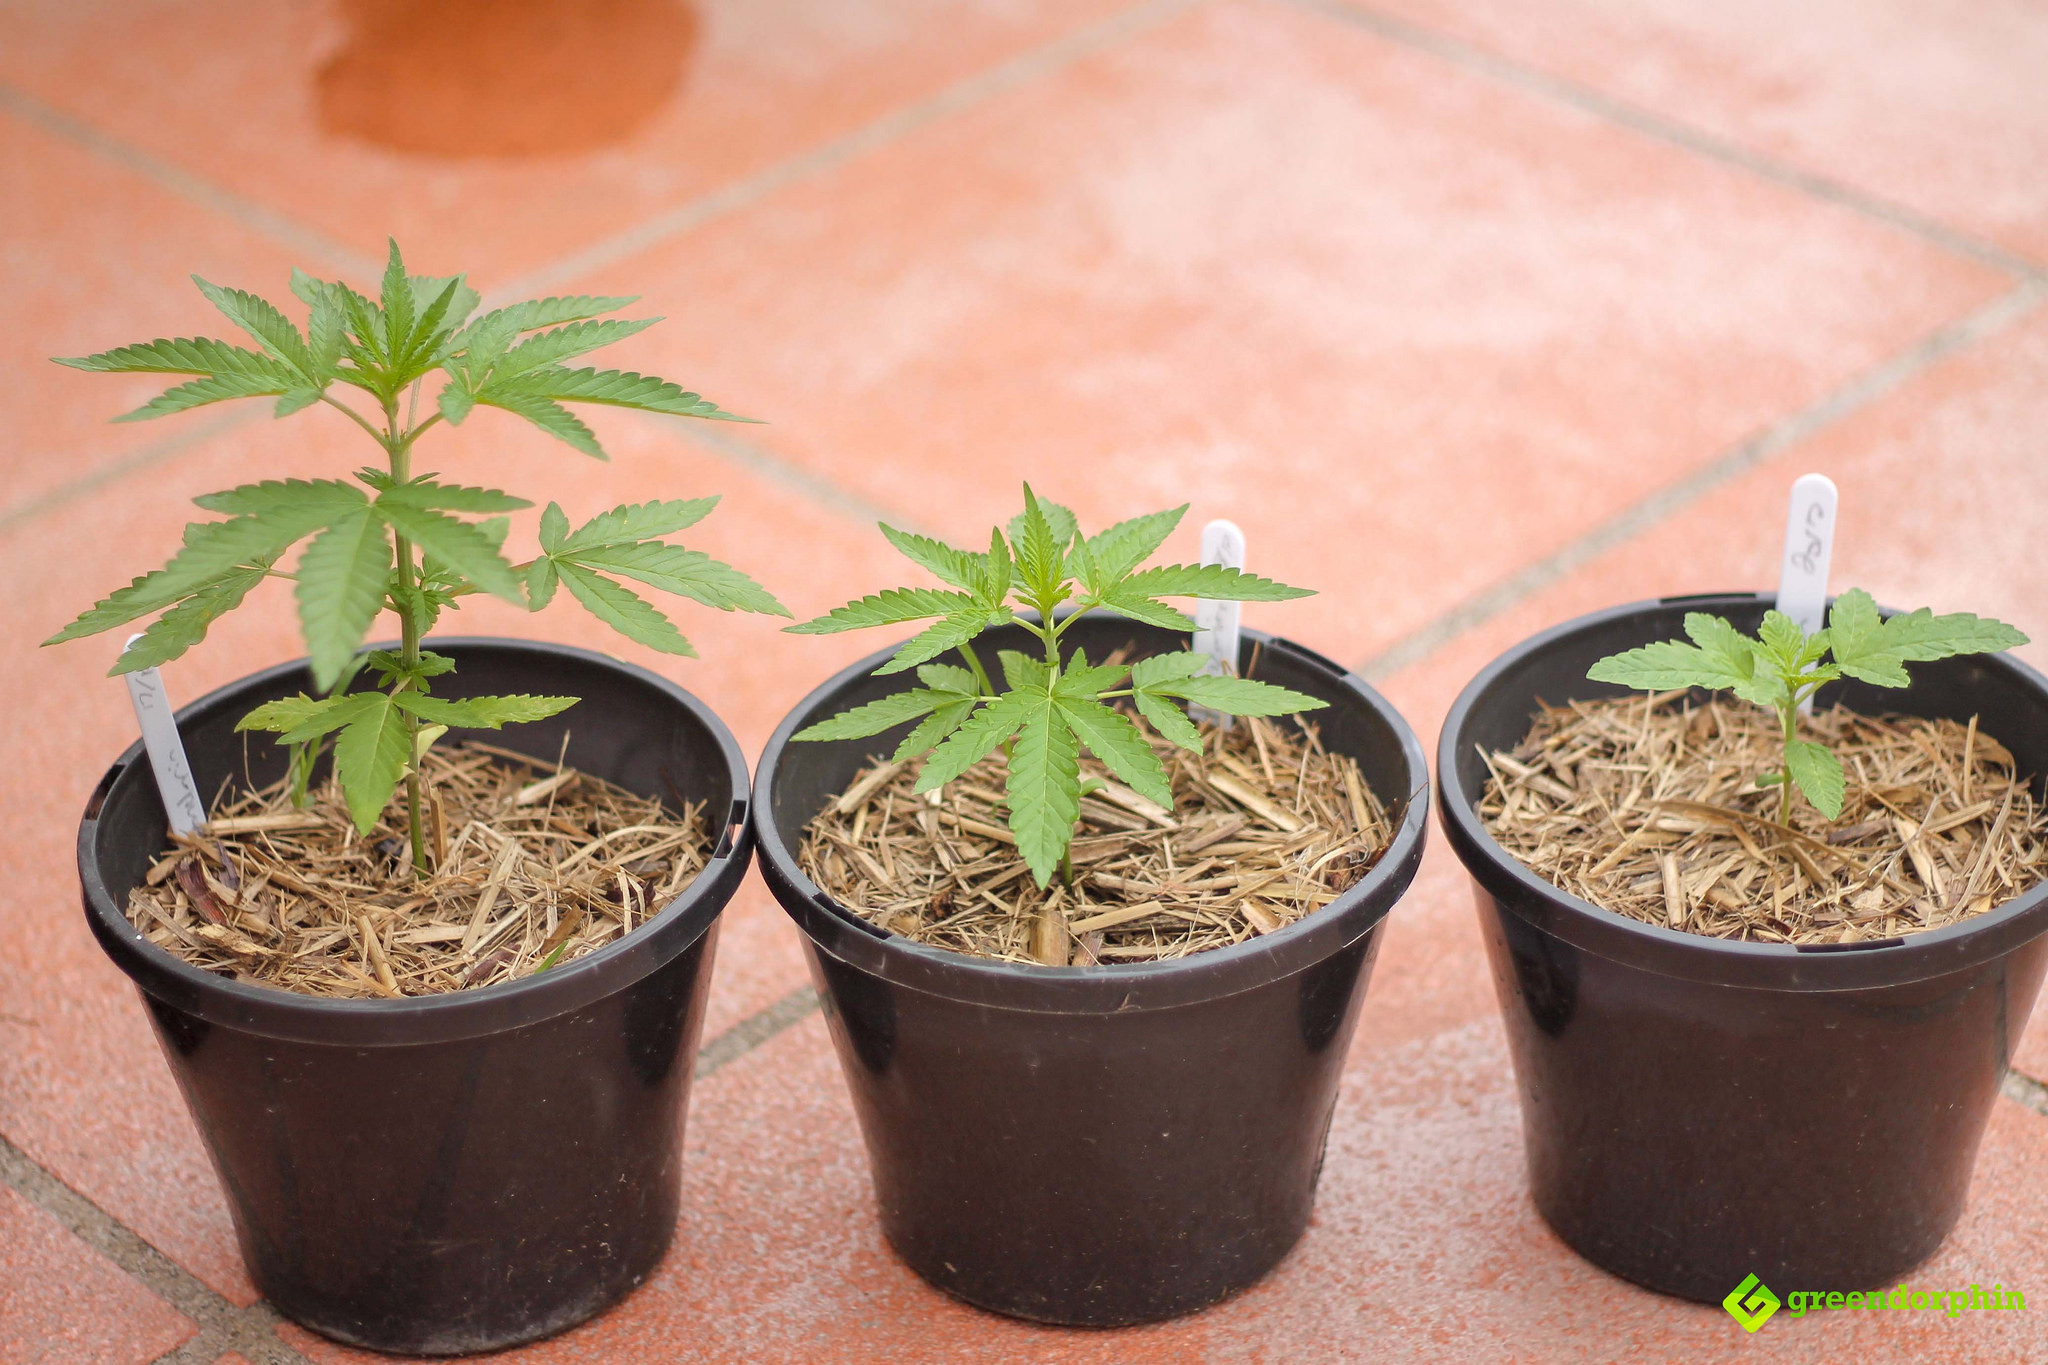 Repot Your Cannabis Plants - grow high quality cannabis